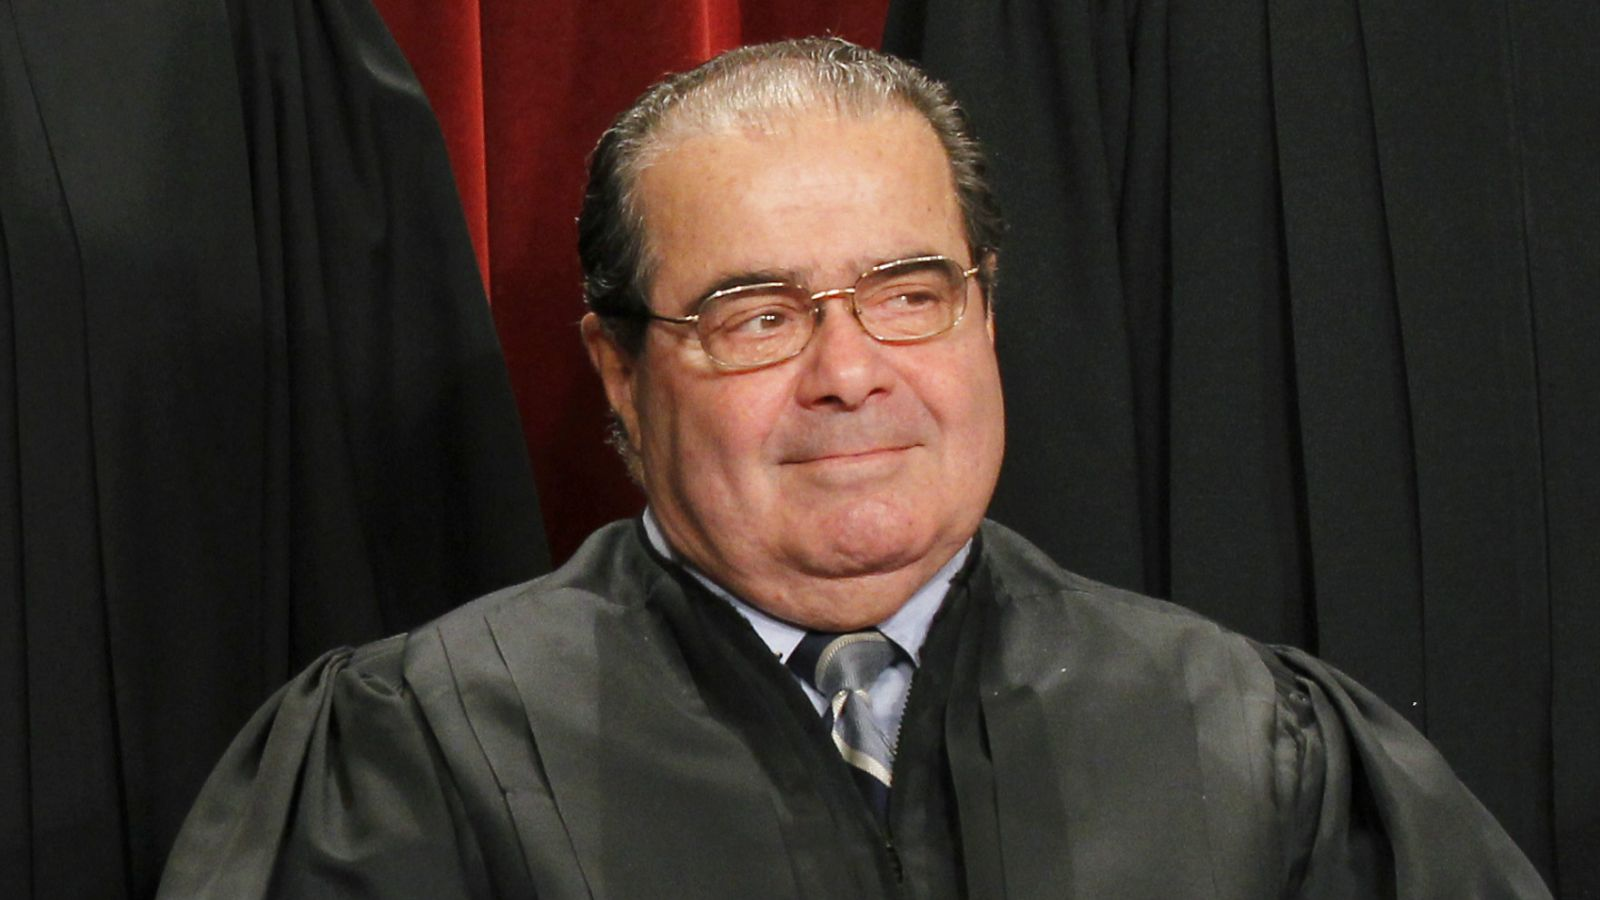 Justice Antonin Scalia has died at age 79